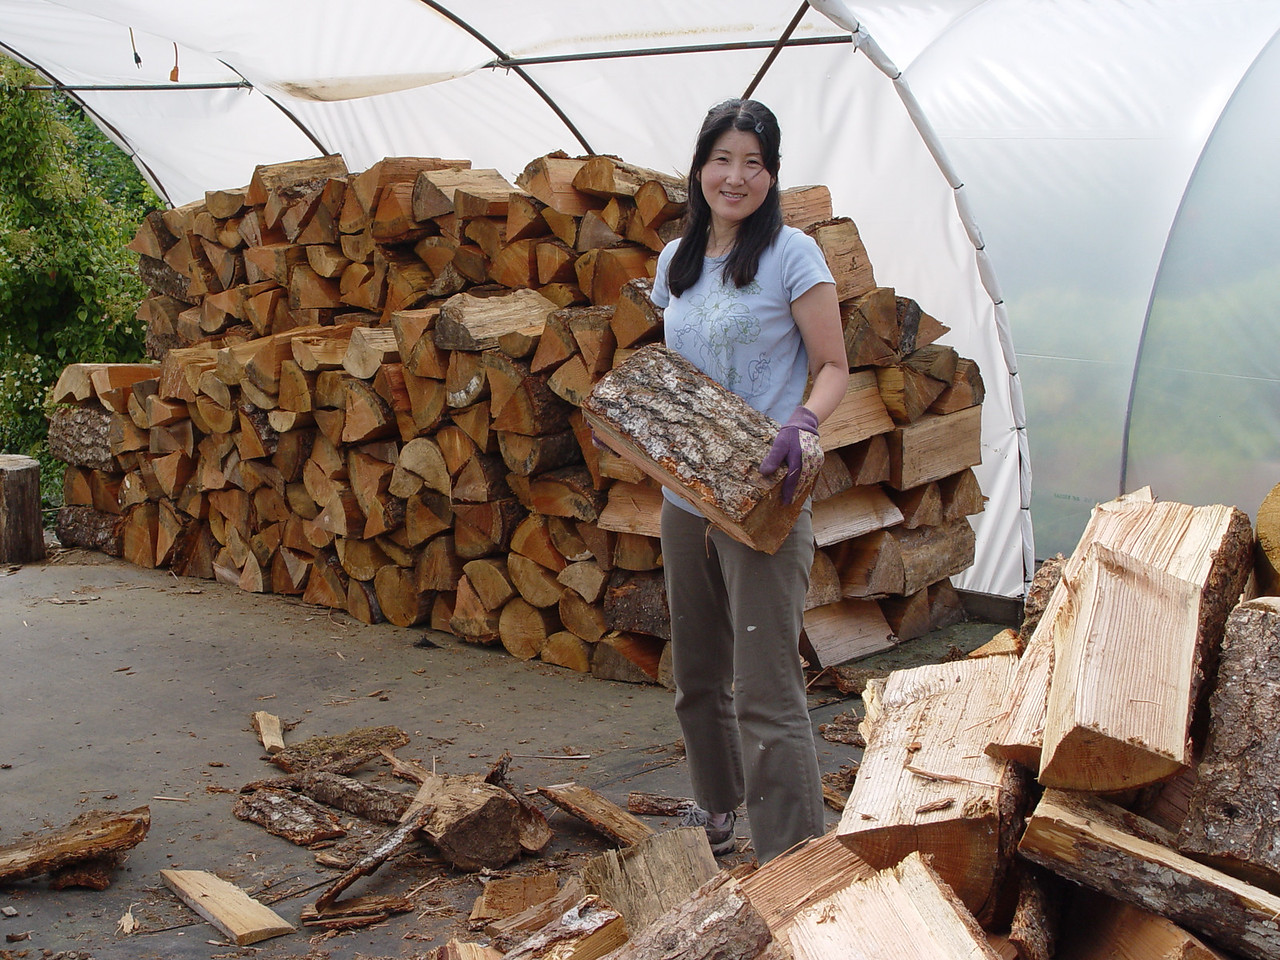 Chiyoko stacks firewood for the winter...